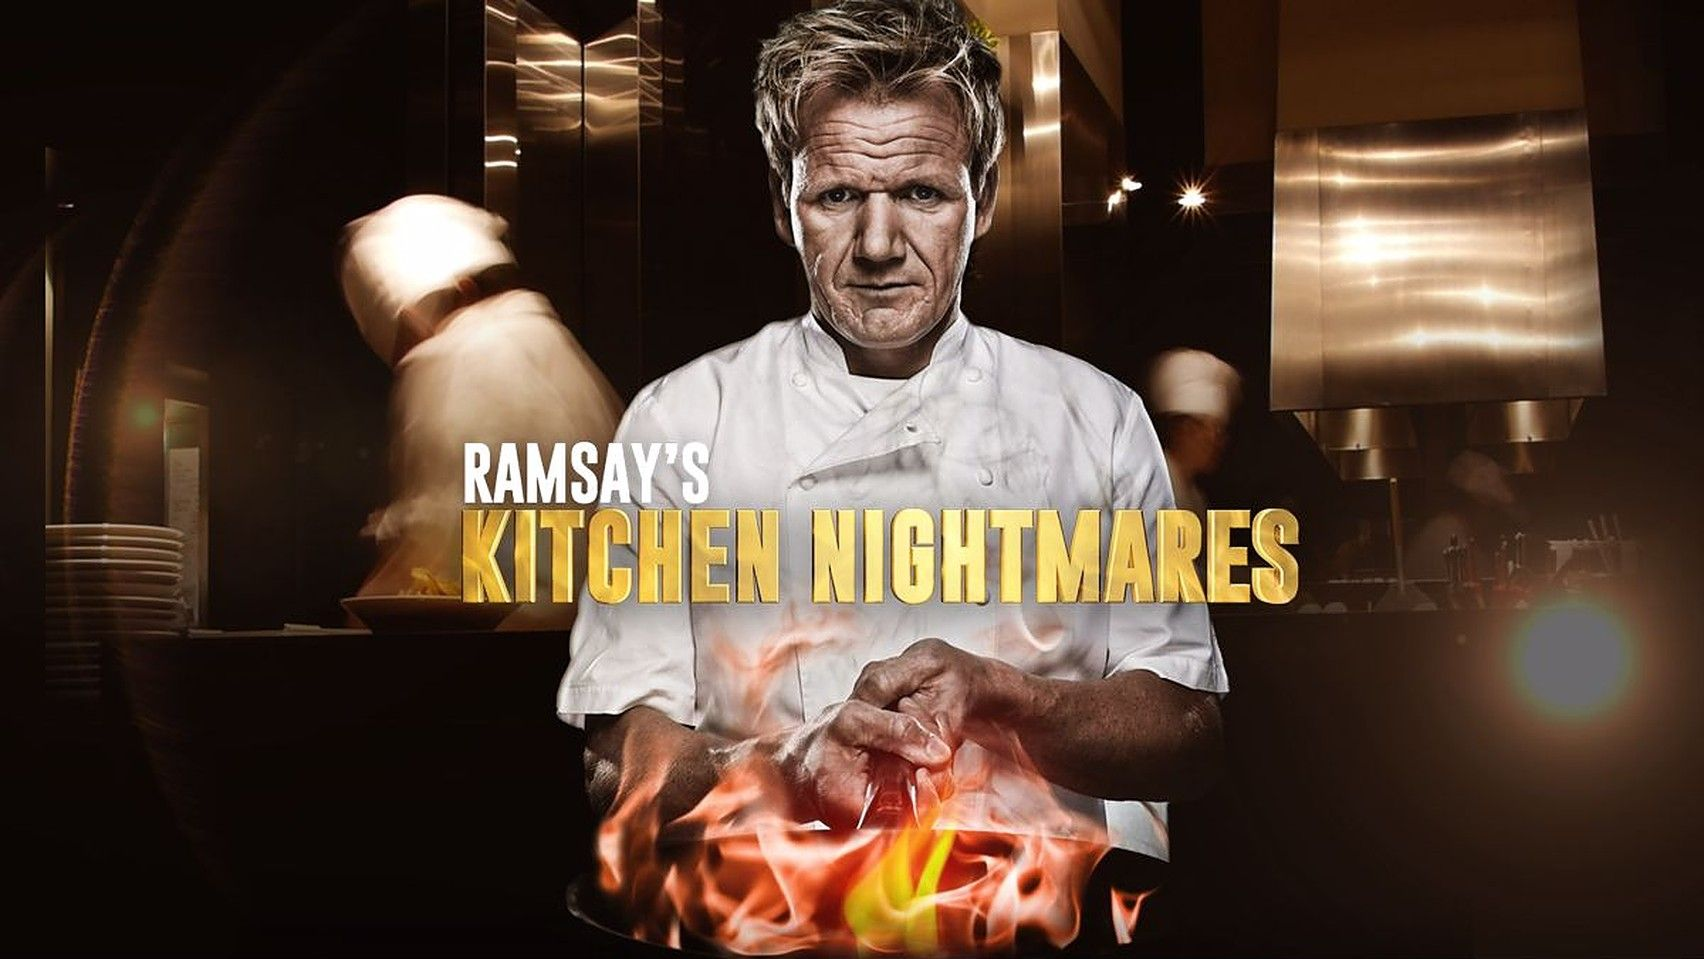 10 Worst Episodes Of Kitchen Nightmares